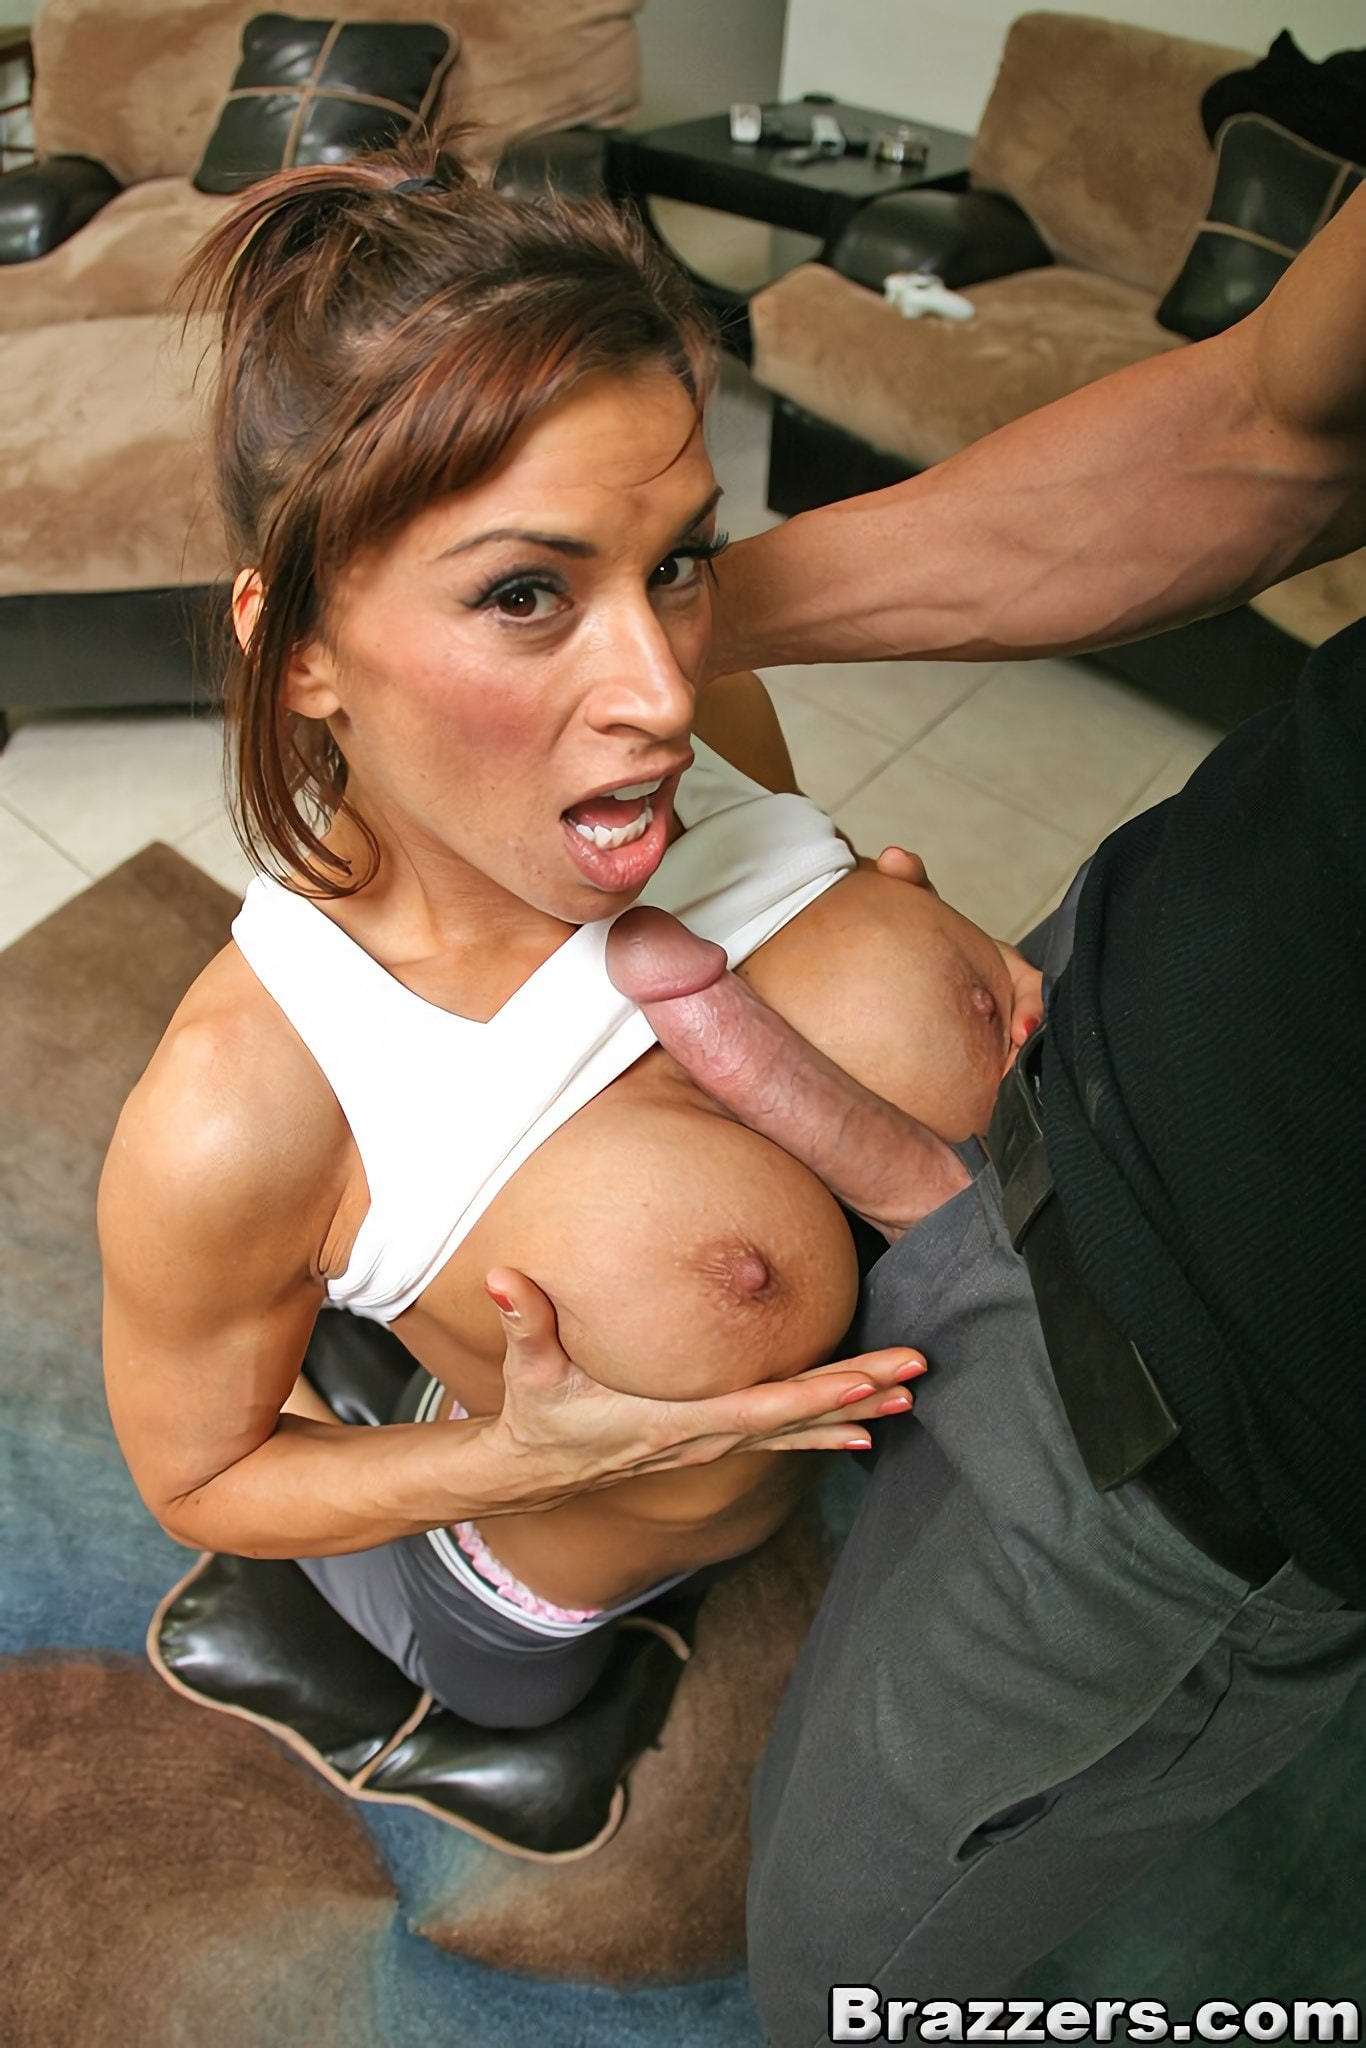 Flexible milf devon michaels gives blowjob and rides dick on the sofa porn photo online